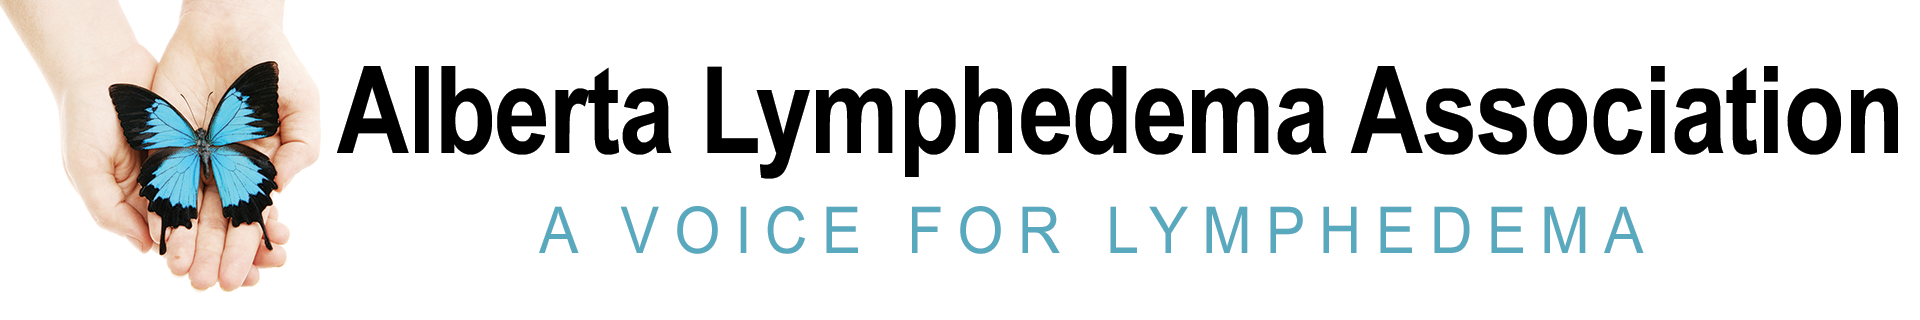 Alberta Lymphedema Association